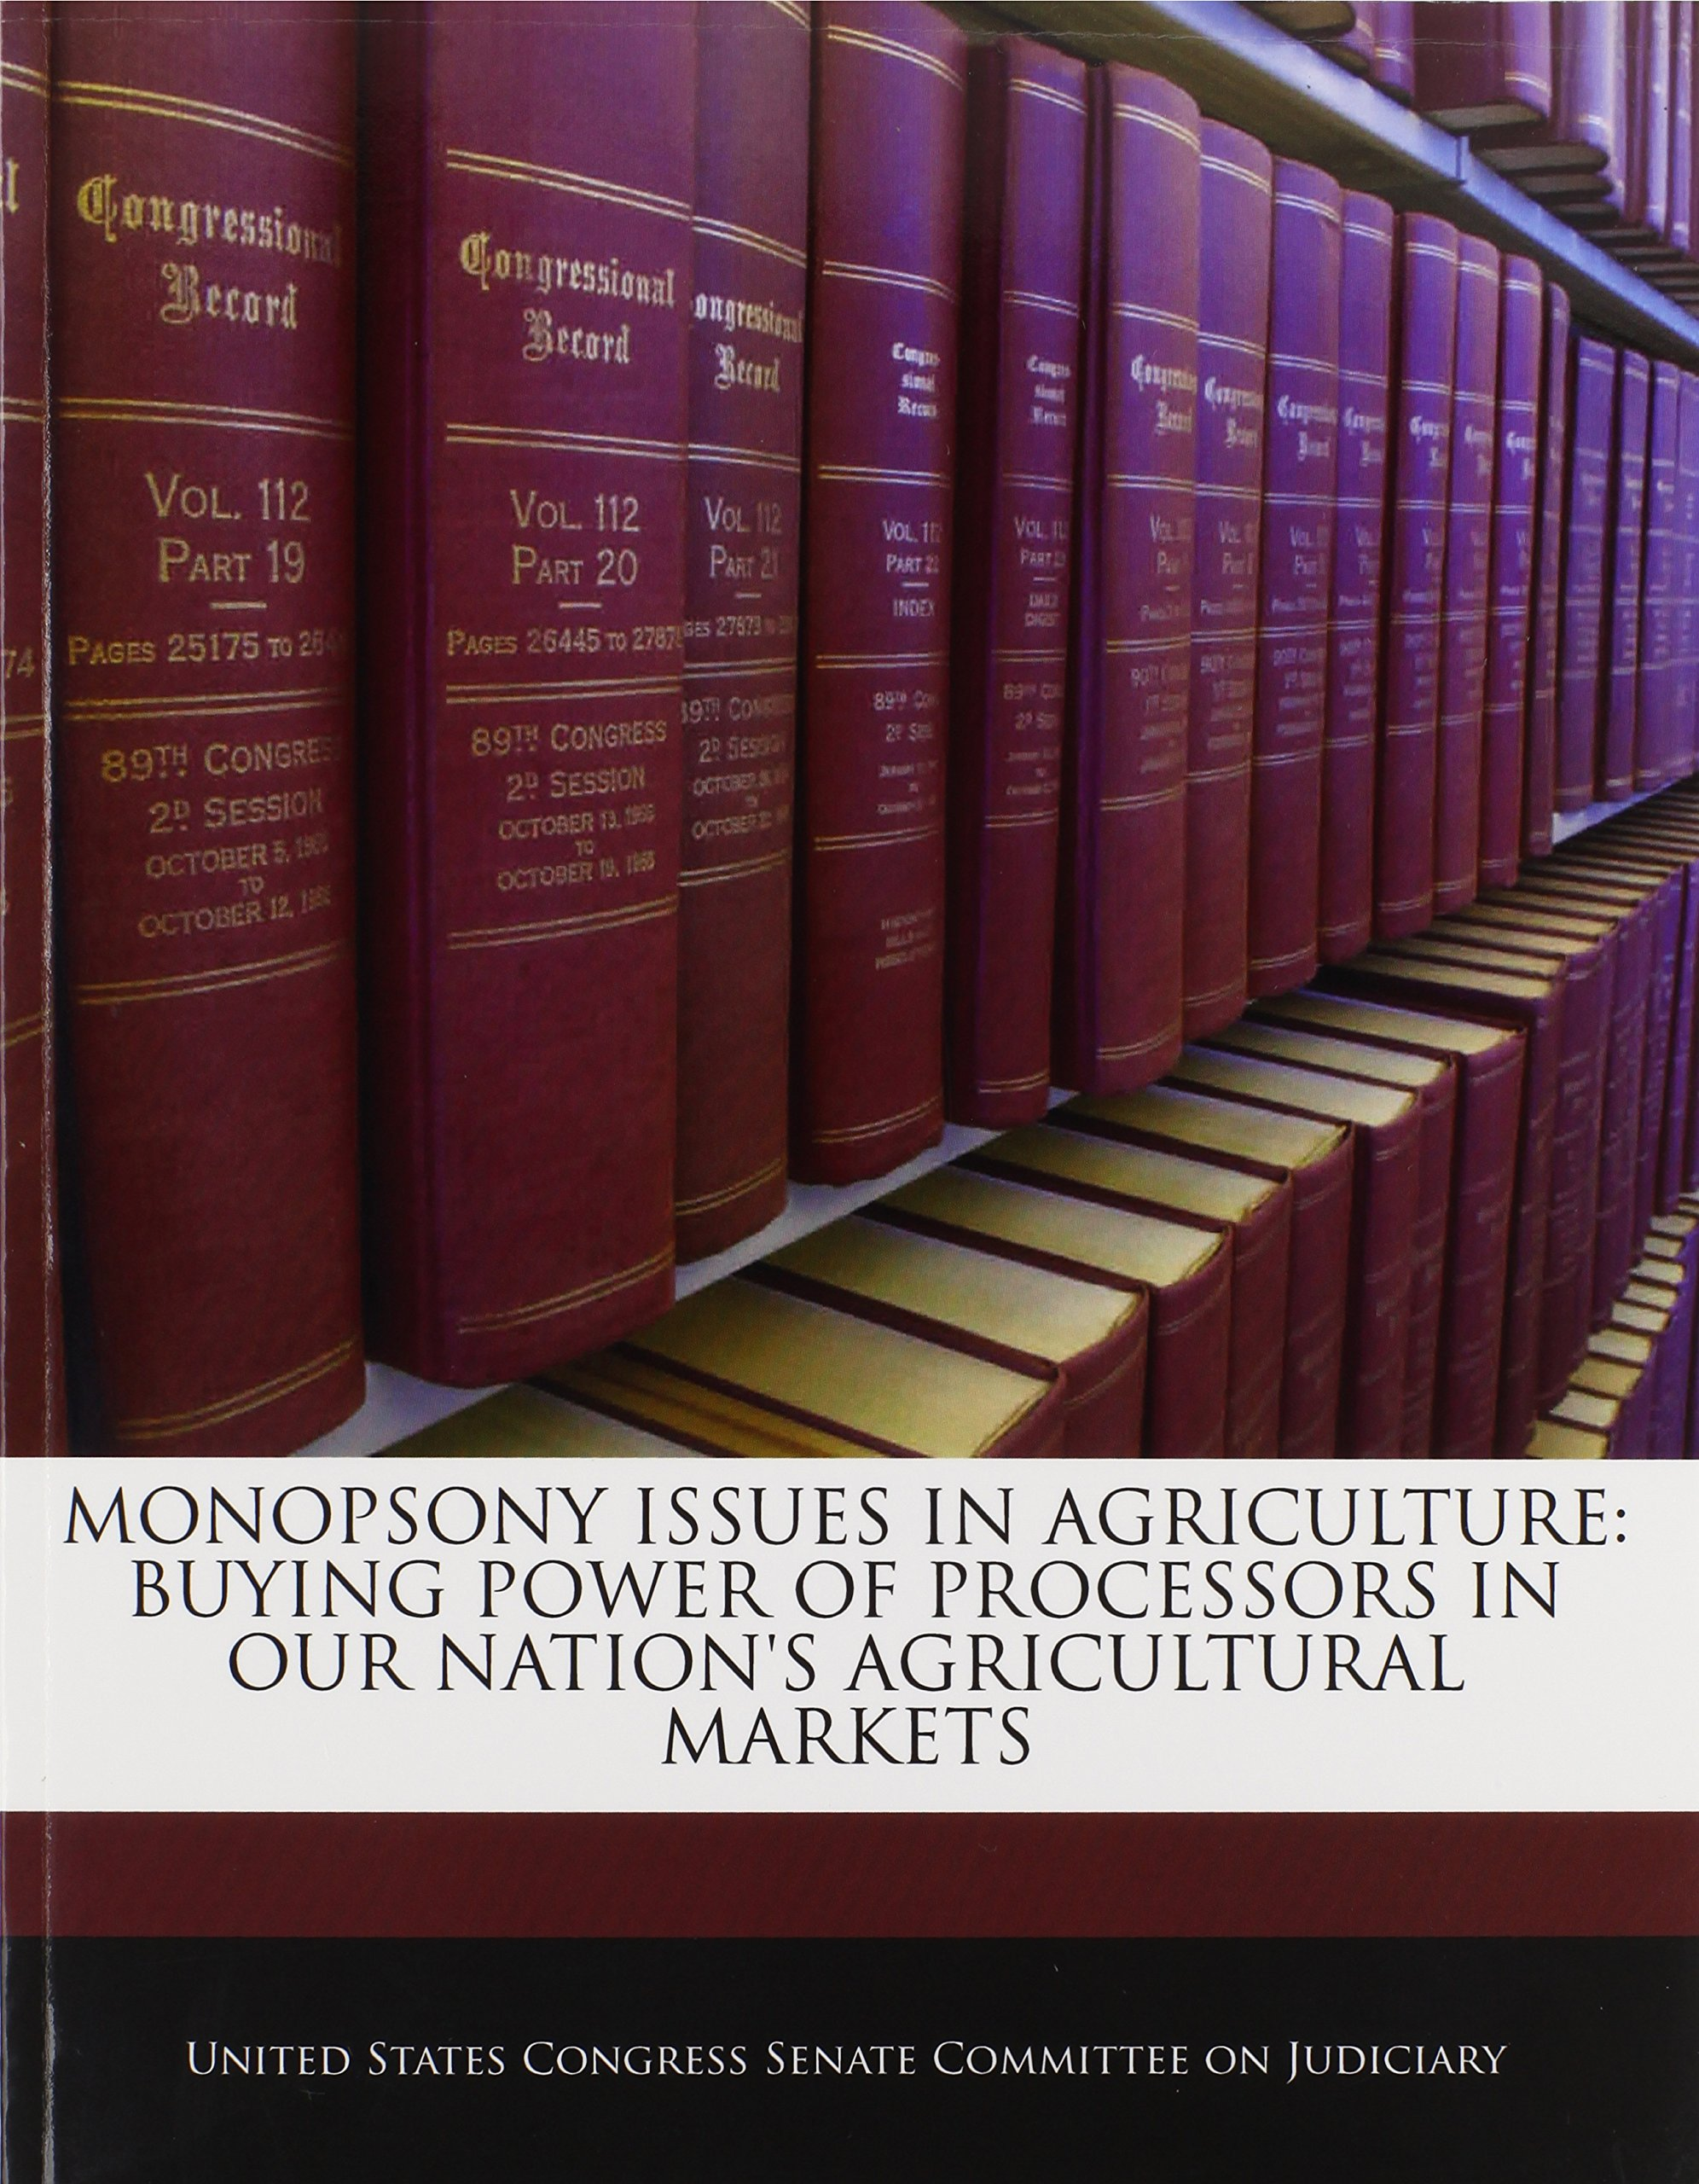 Download Monopsony Issues In Agriculture: Buying Power Of Processors In Our Nation's Agricultural Markets ebook